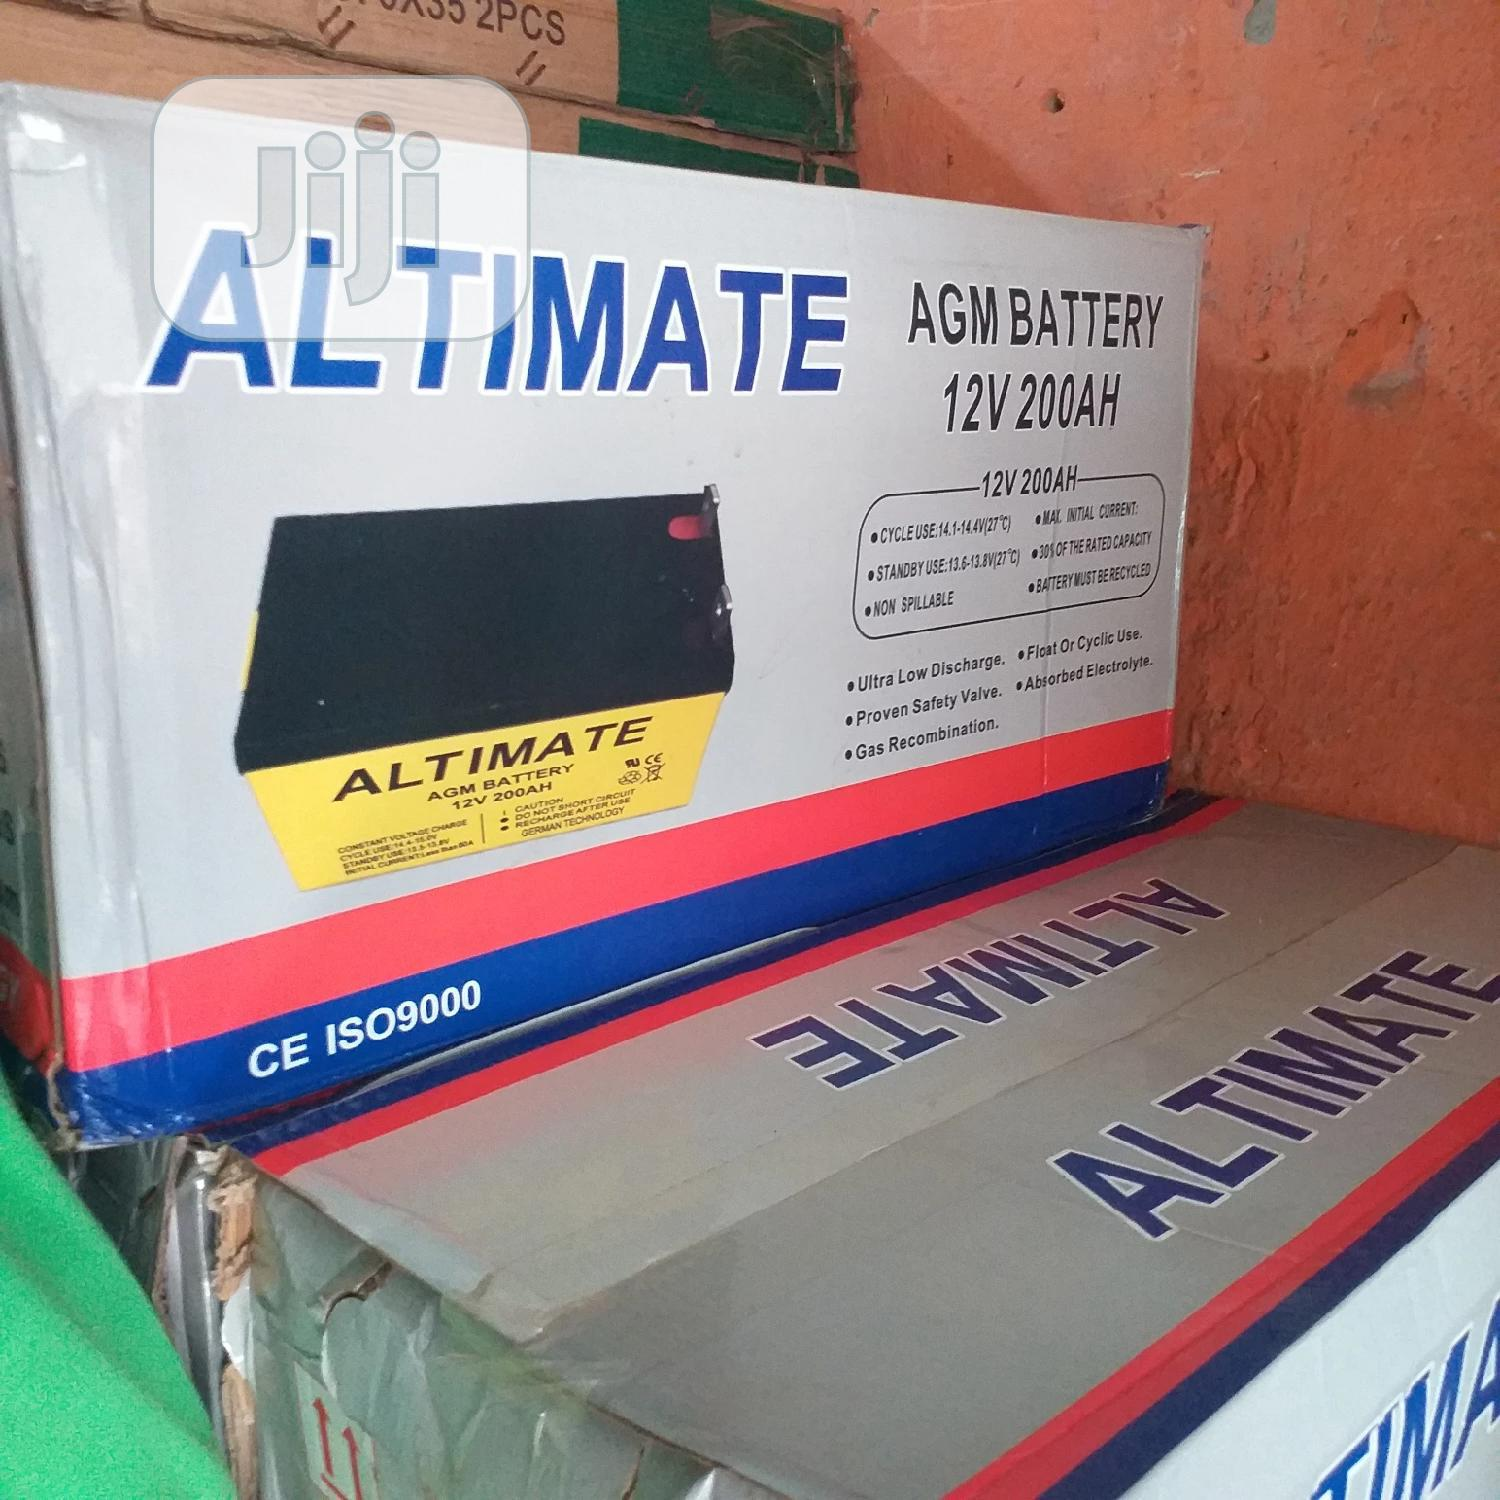 Altimate AGM Battery 12V 200ah